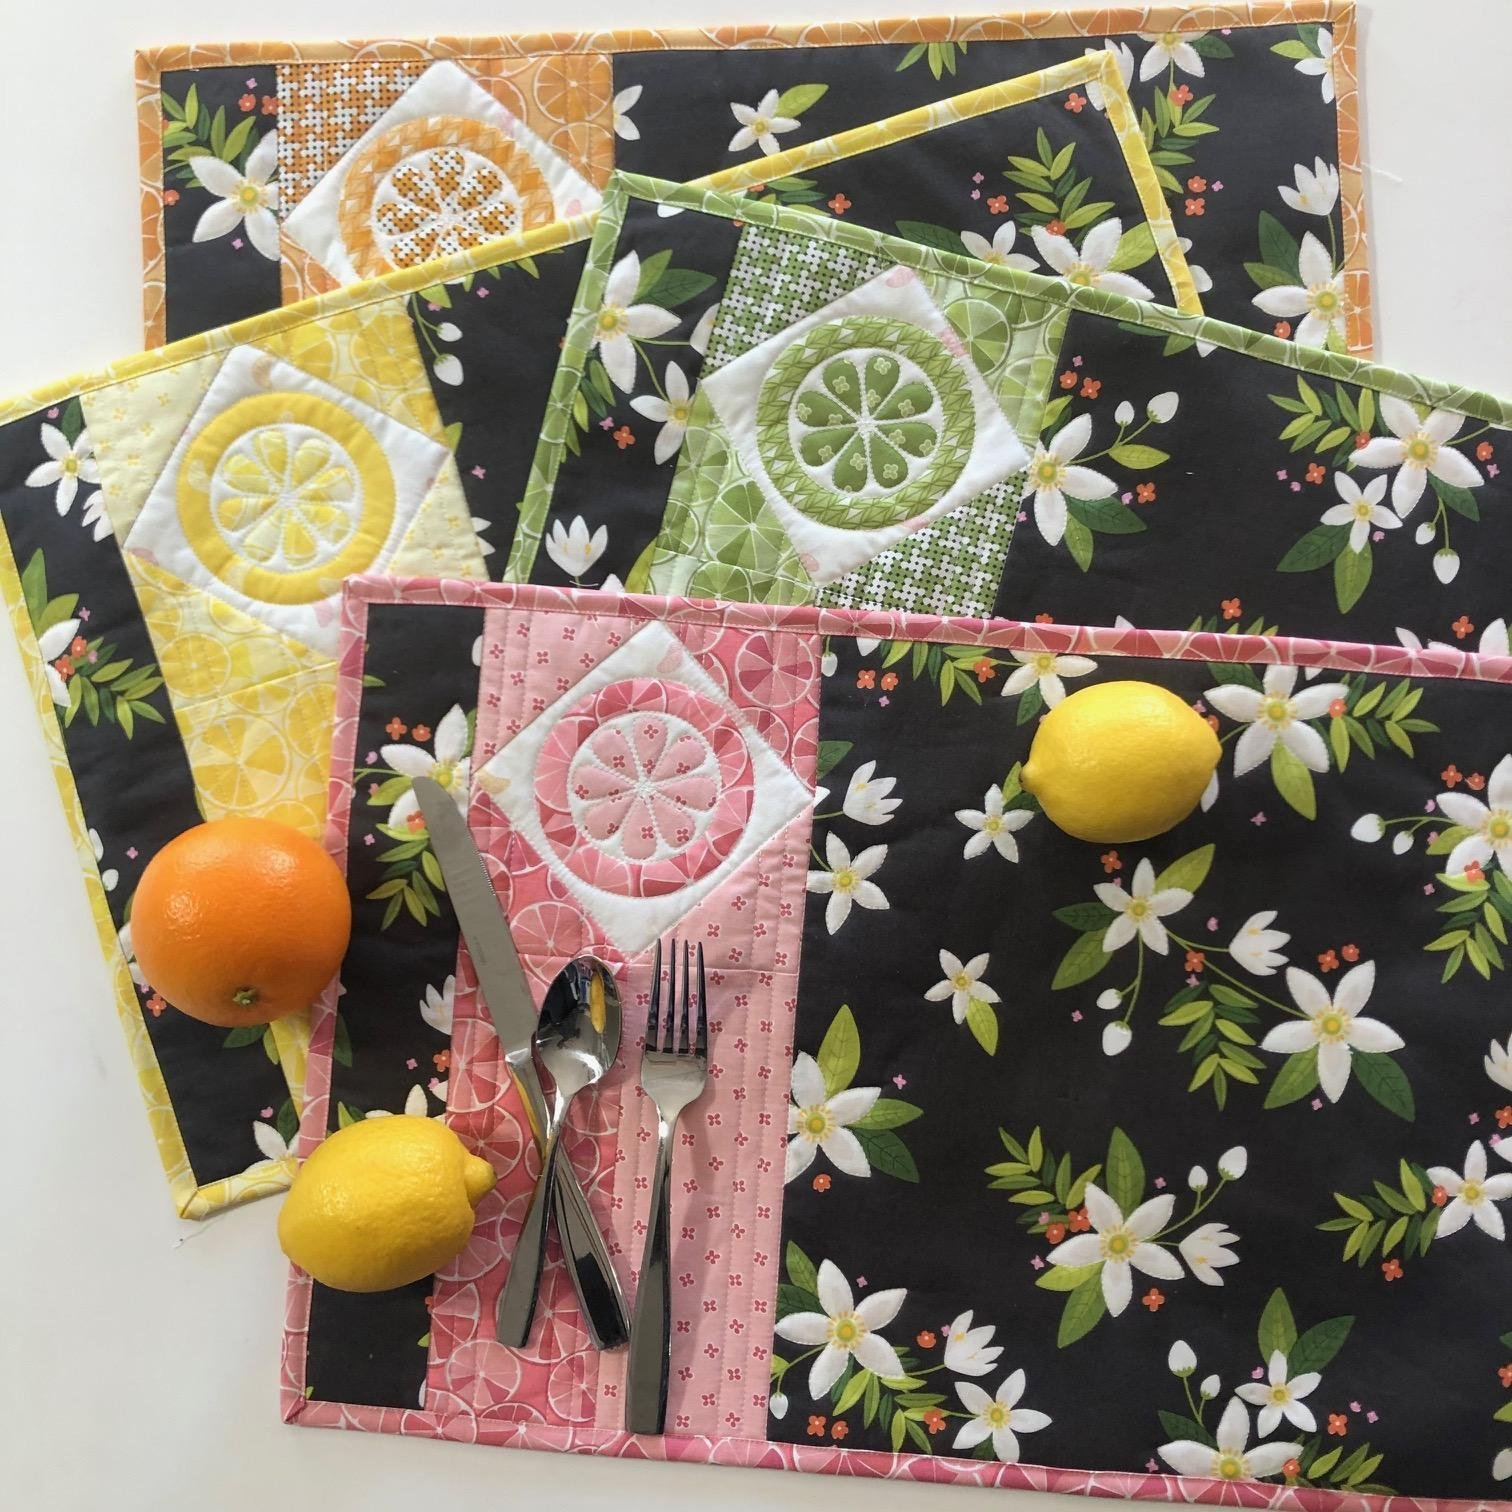 Juicy Jems Placemats Pattern